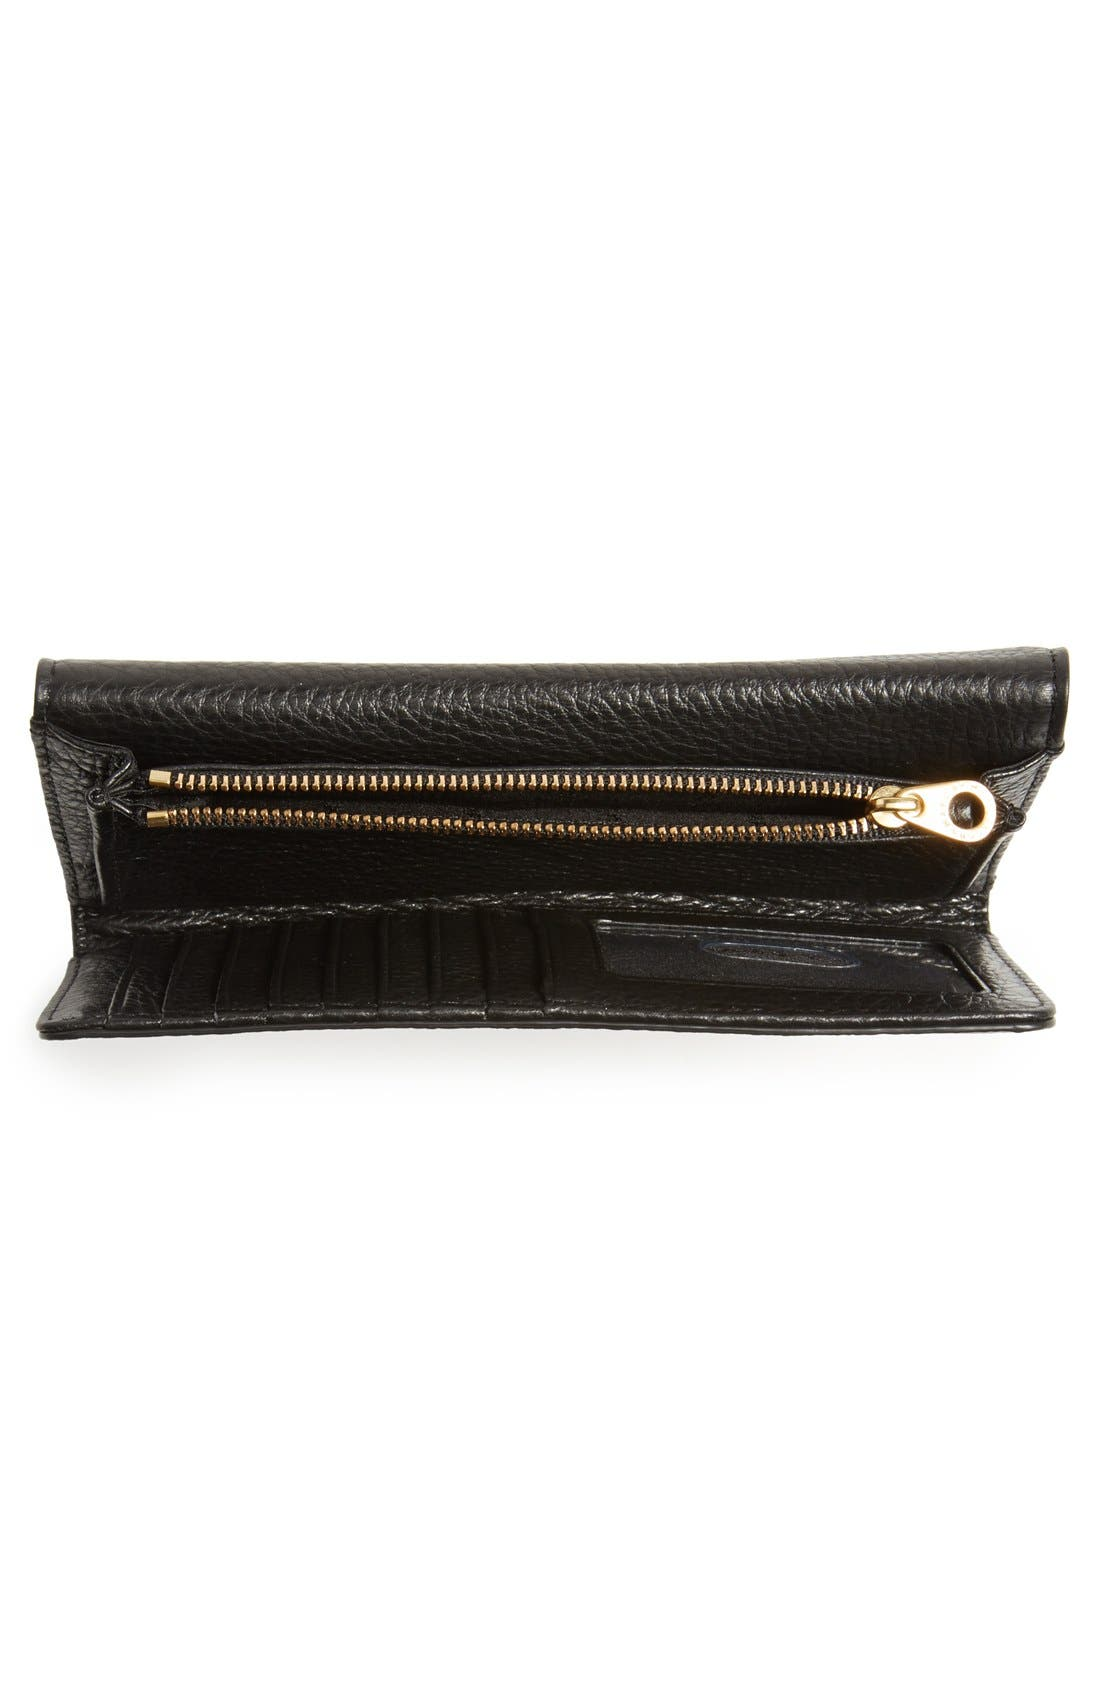 MARC JACOBS,                             MARC BY MARC JACOBS 'Too Hot to Handle' Long Trifold Wallet,                             Alternate thumbnail 3, color,                             001